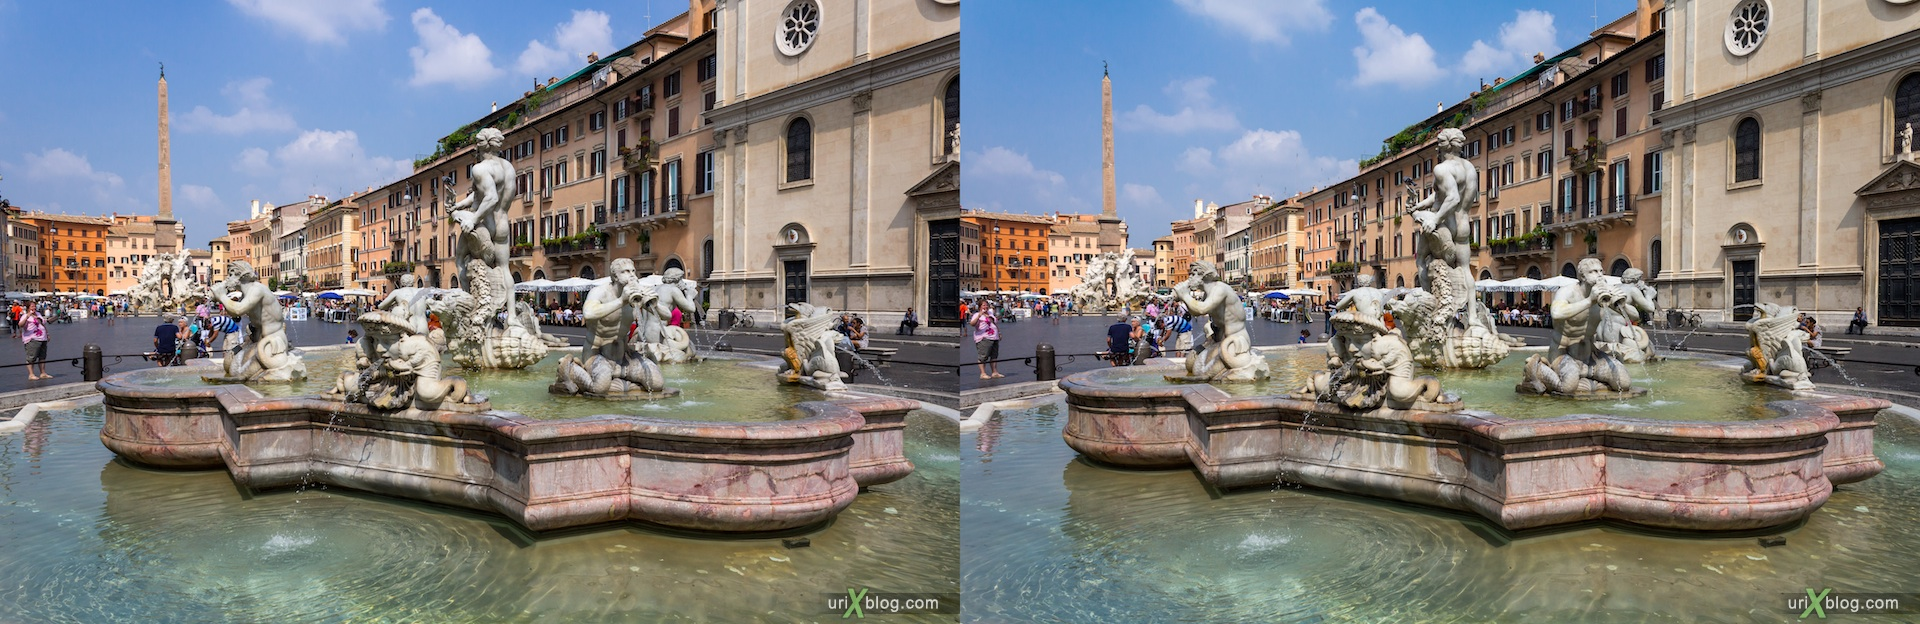 2012, Рим, Италия, Rome, Italy, Площадь Навона, фонтан Мавра, Fontana del Moro, Piazza Navona, 3D, stereo pair, cross-eyed, crossview, стерео, стереопара